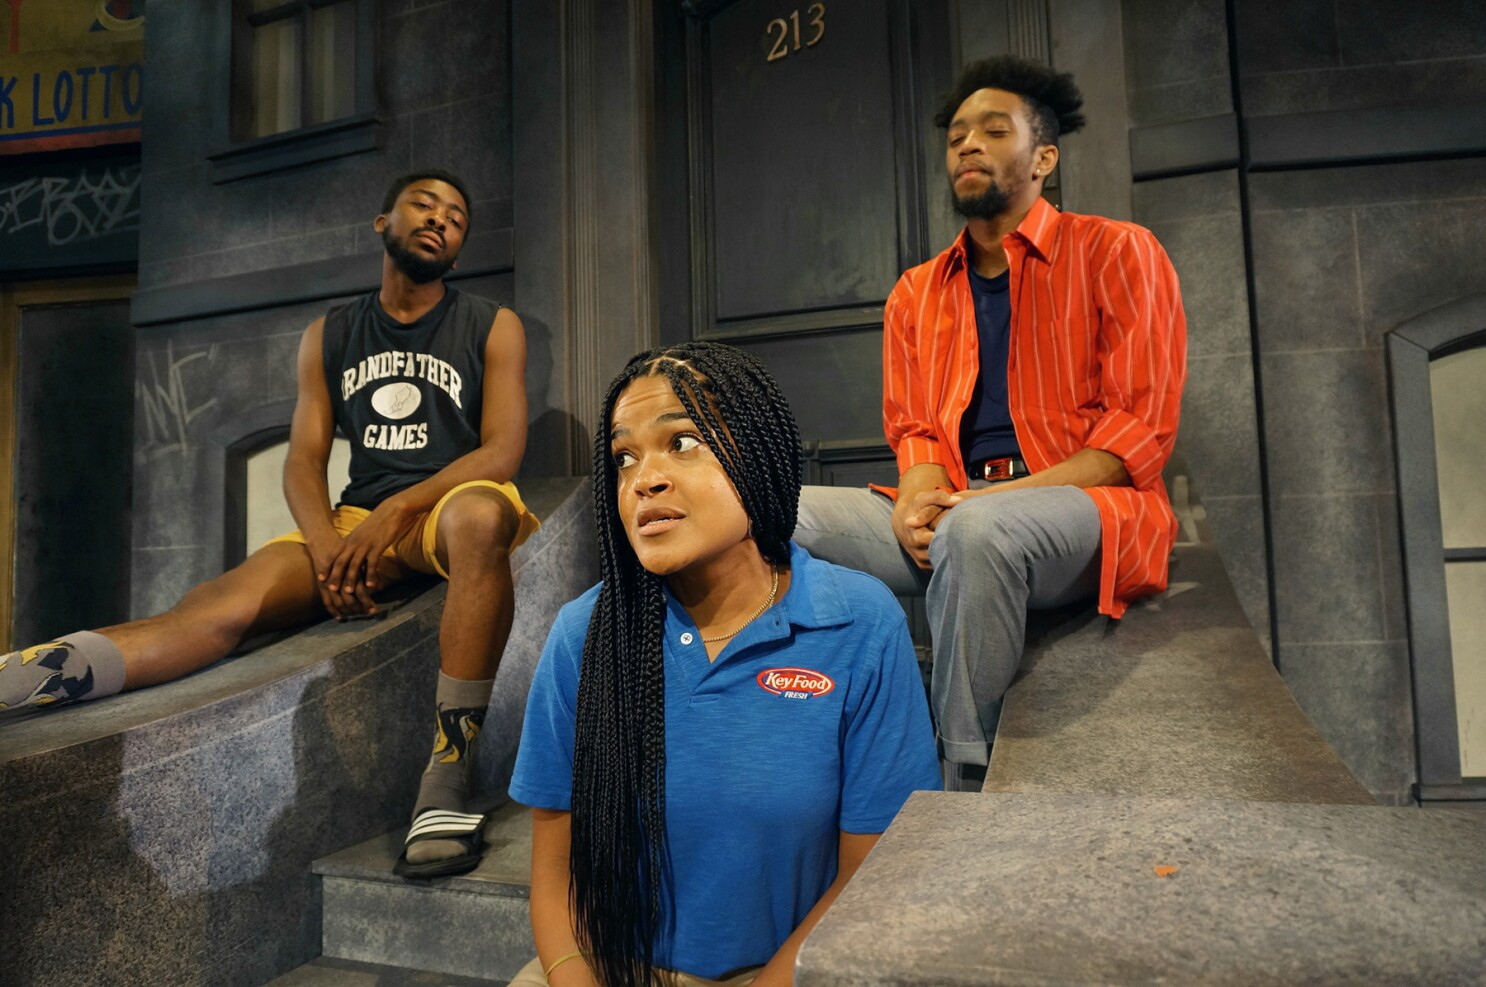 A new vibrant era in African American playwriting seen in